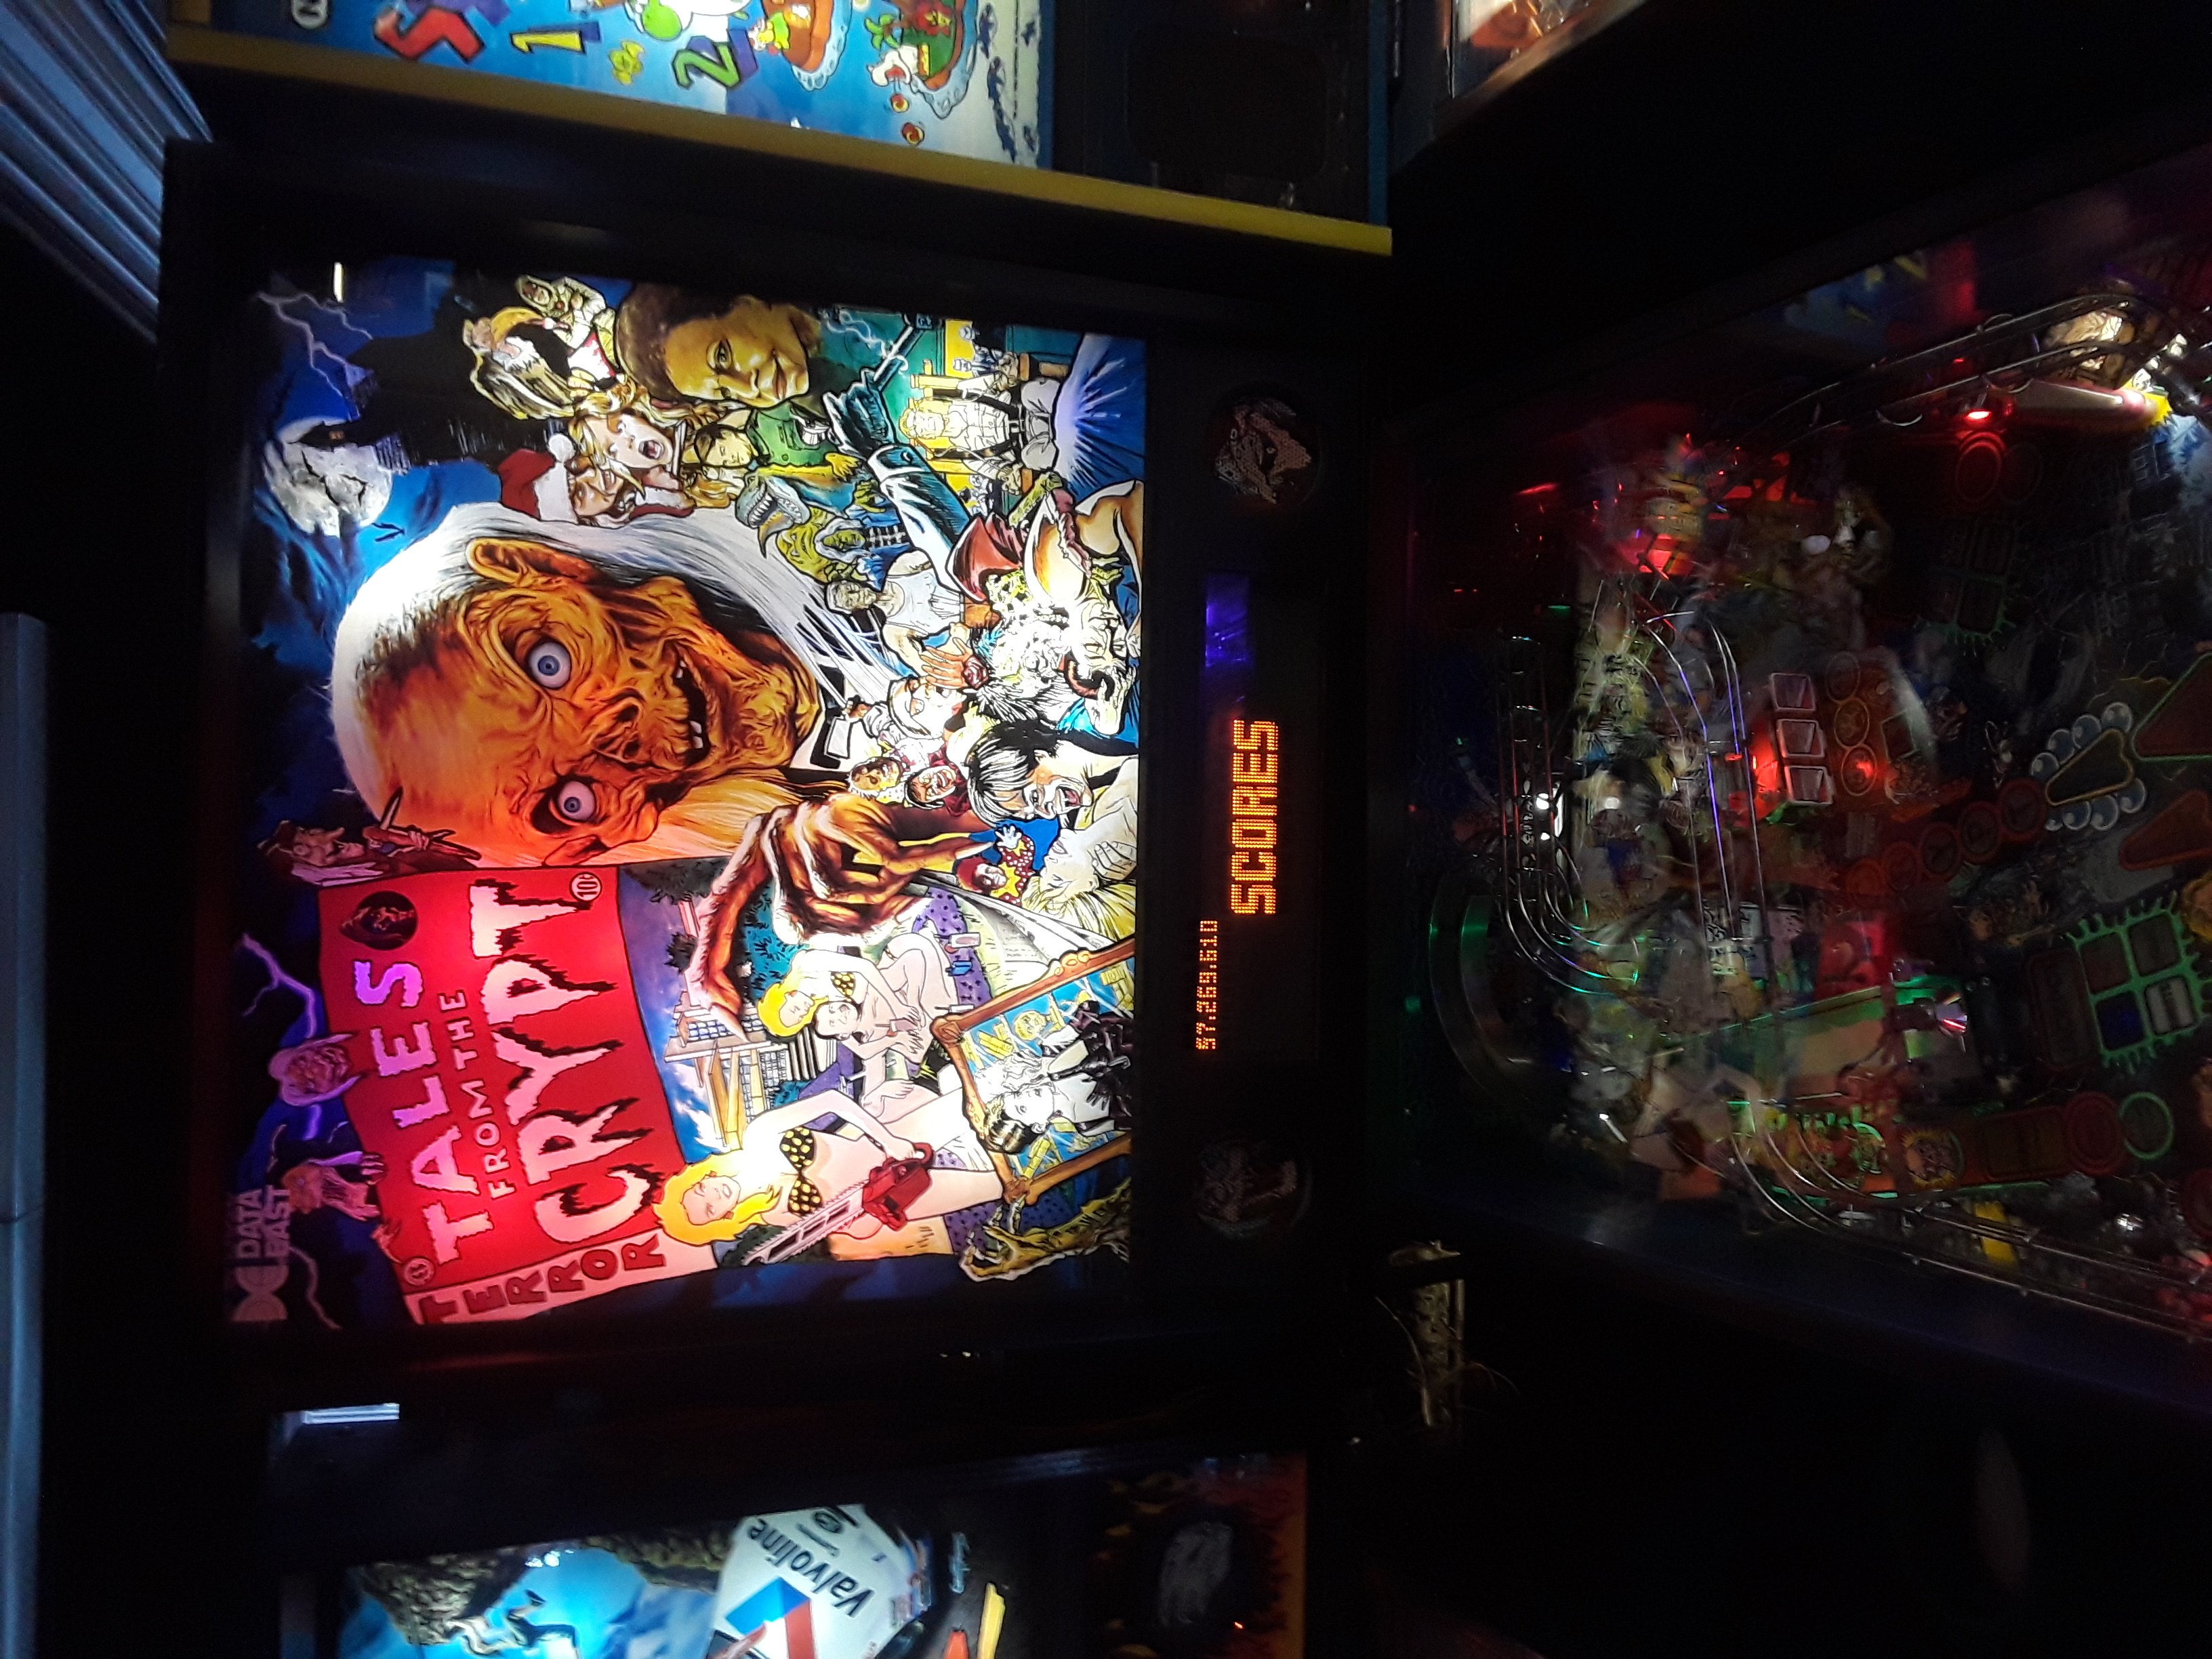 JML101582: Tales From the Crypt (Pinball: 3 Balls) 51,269,610 points on 2018-04-04 16:49:02